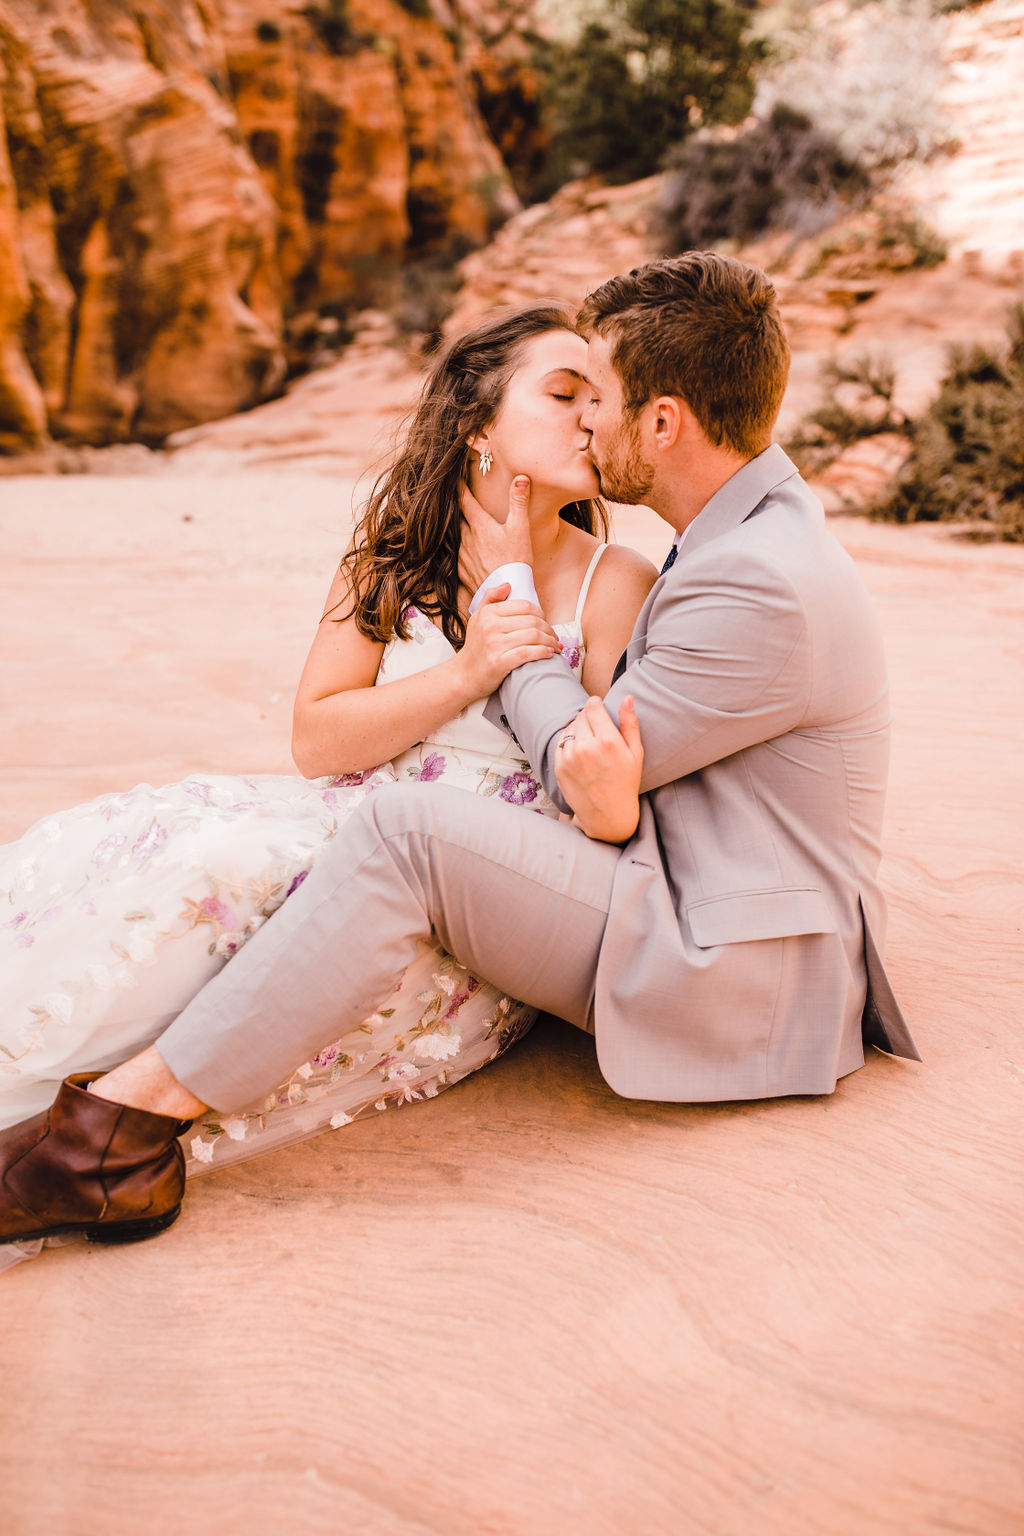 best page arizona formal photographer sitting cuddling red rocks sand pink floral wedding dress kissing romantic